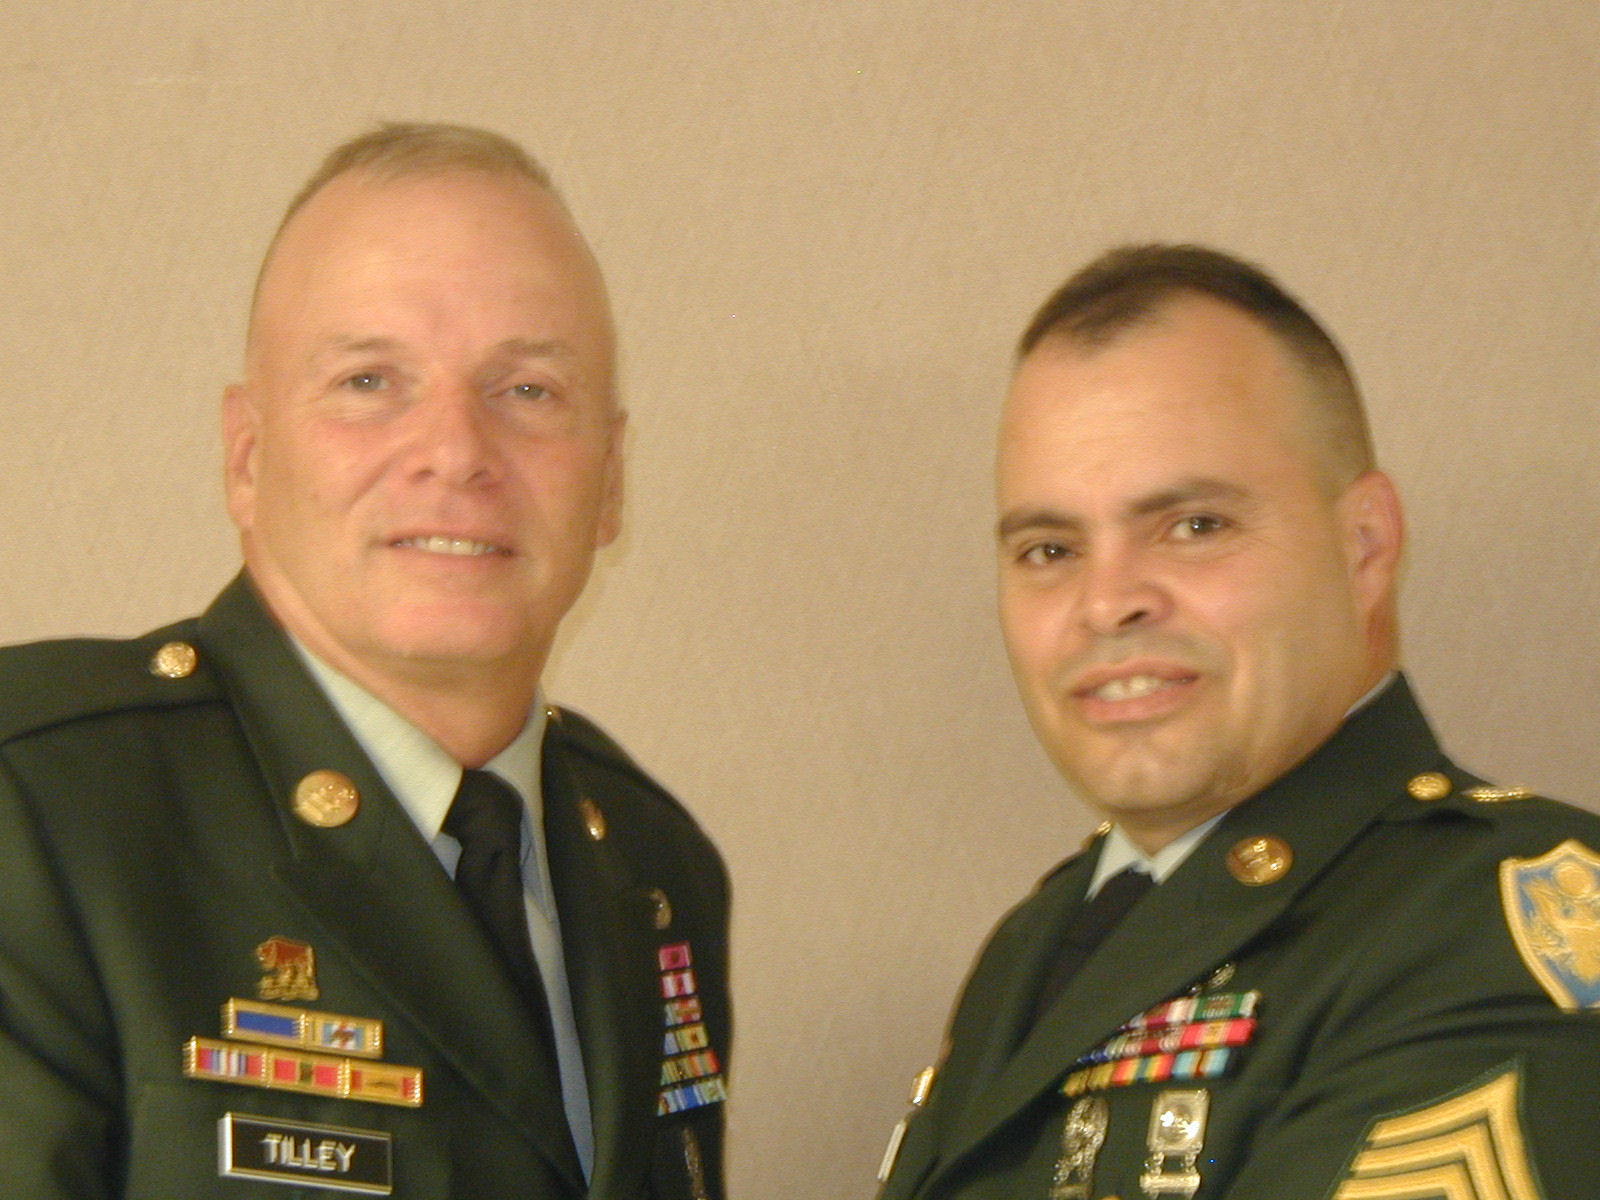 Sergeant Major of the Army Jack L. Tilley with the then present school Sergeant Major Cecilio Rodriguez - circa 2004